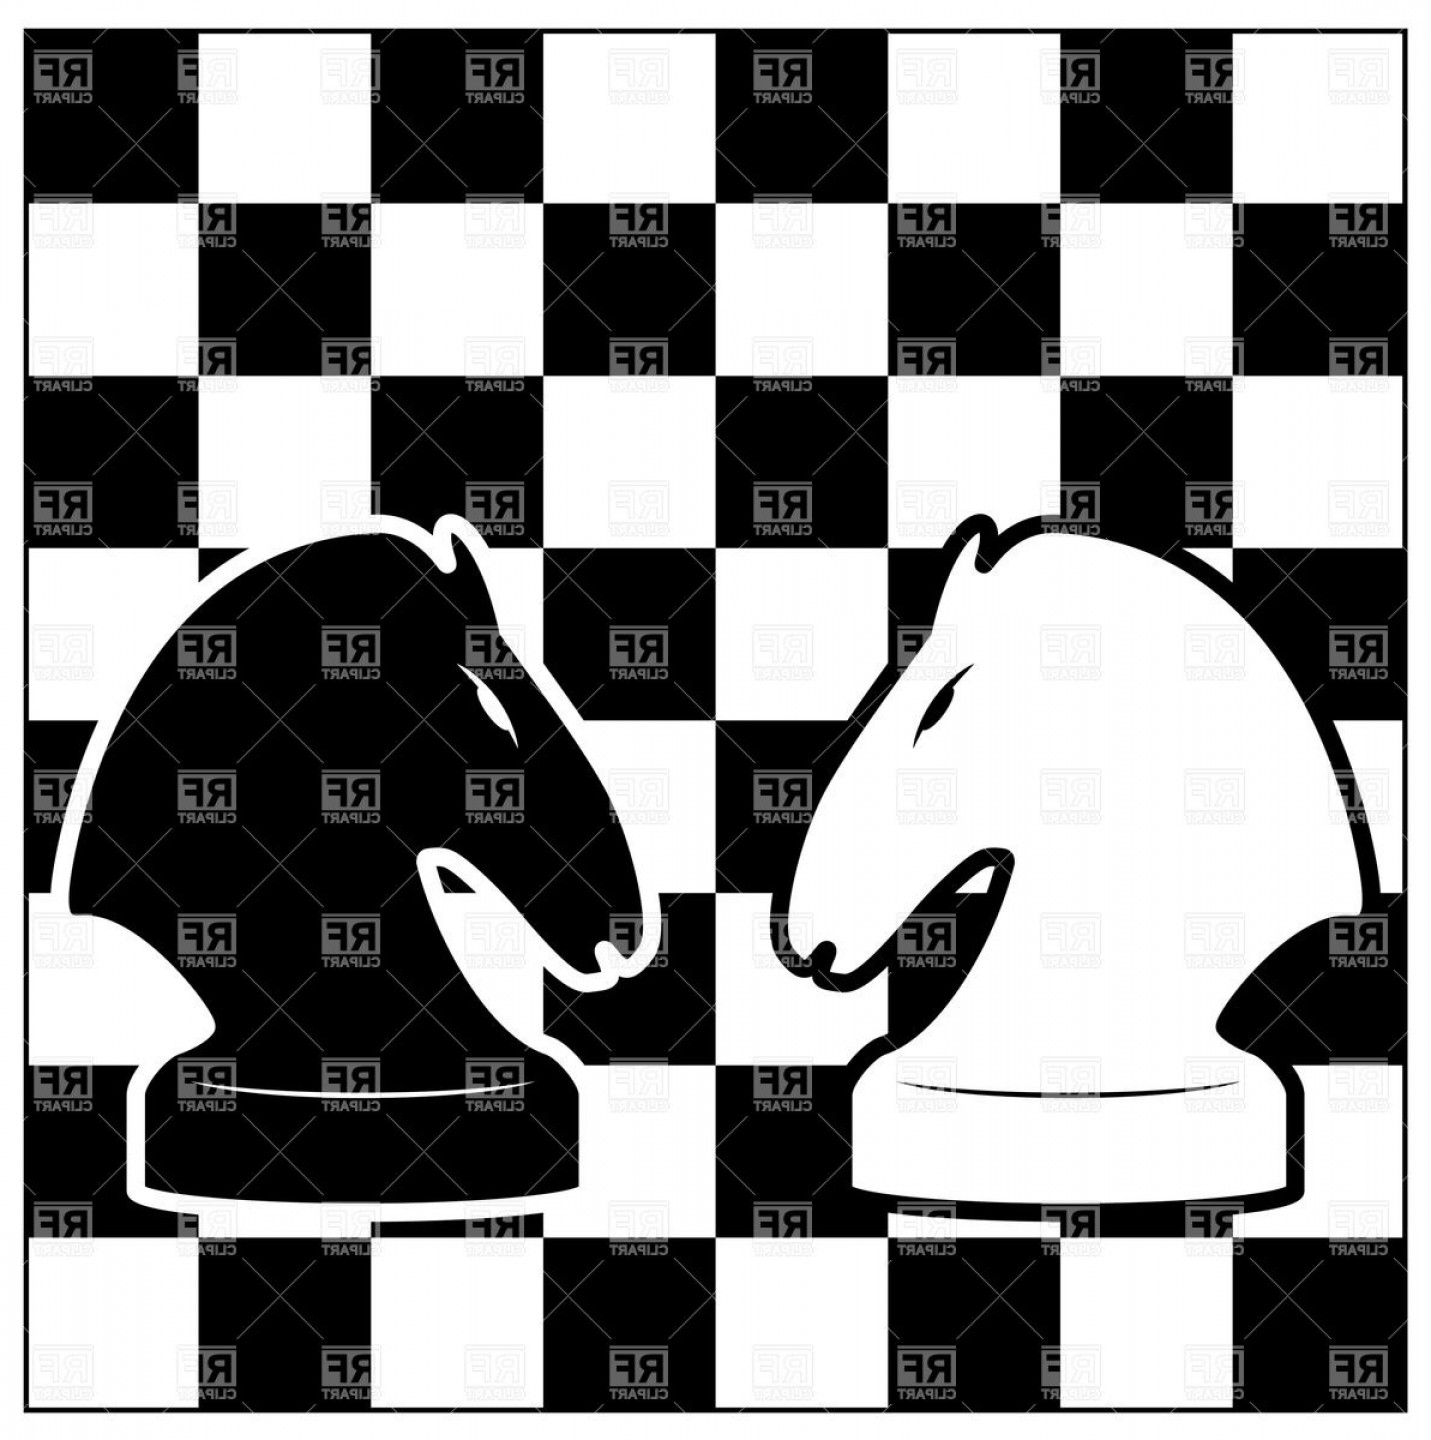 Chess Knight Logo Vector: Black And White Chess Board With Two Knights Vector Clipart